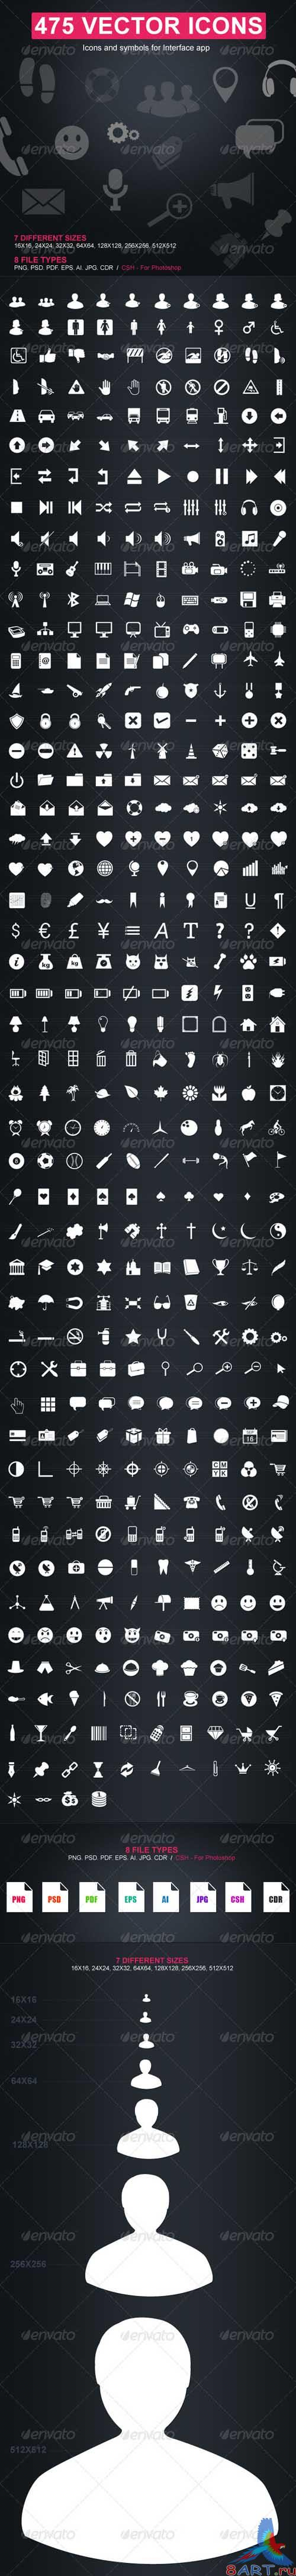 GraphicRiver 475 Vector Icons - REUPLOAD